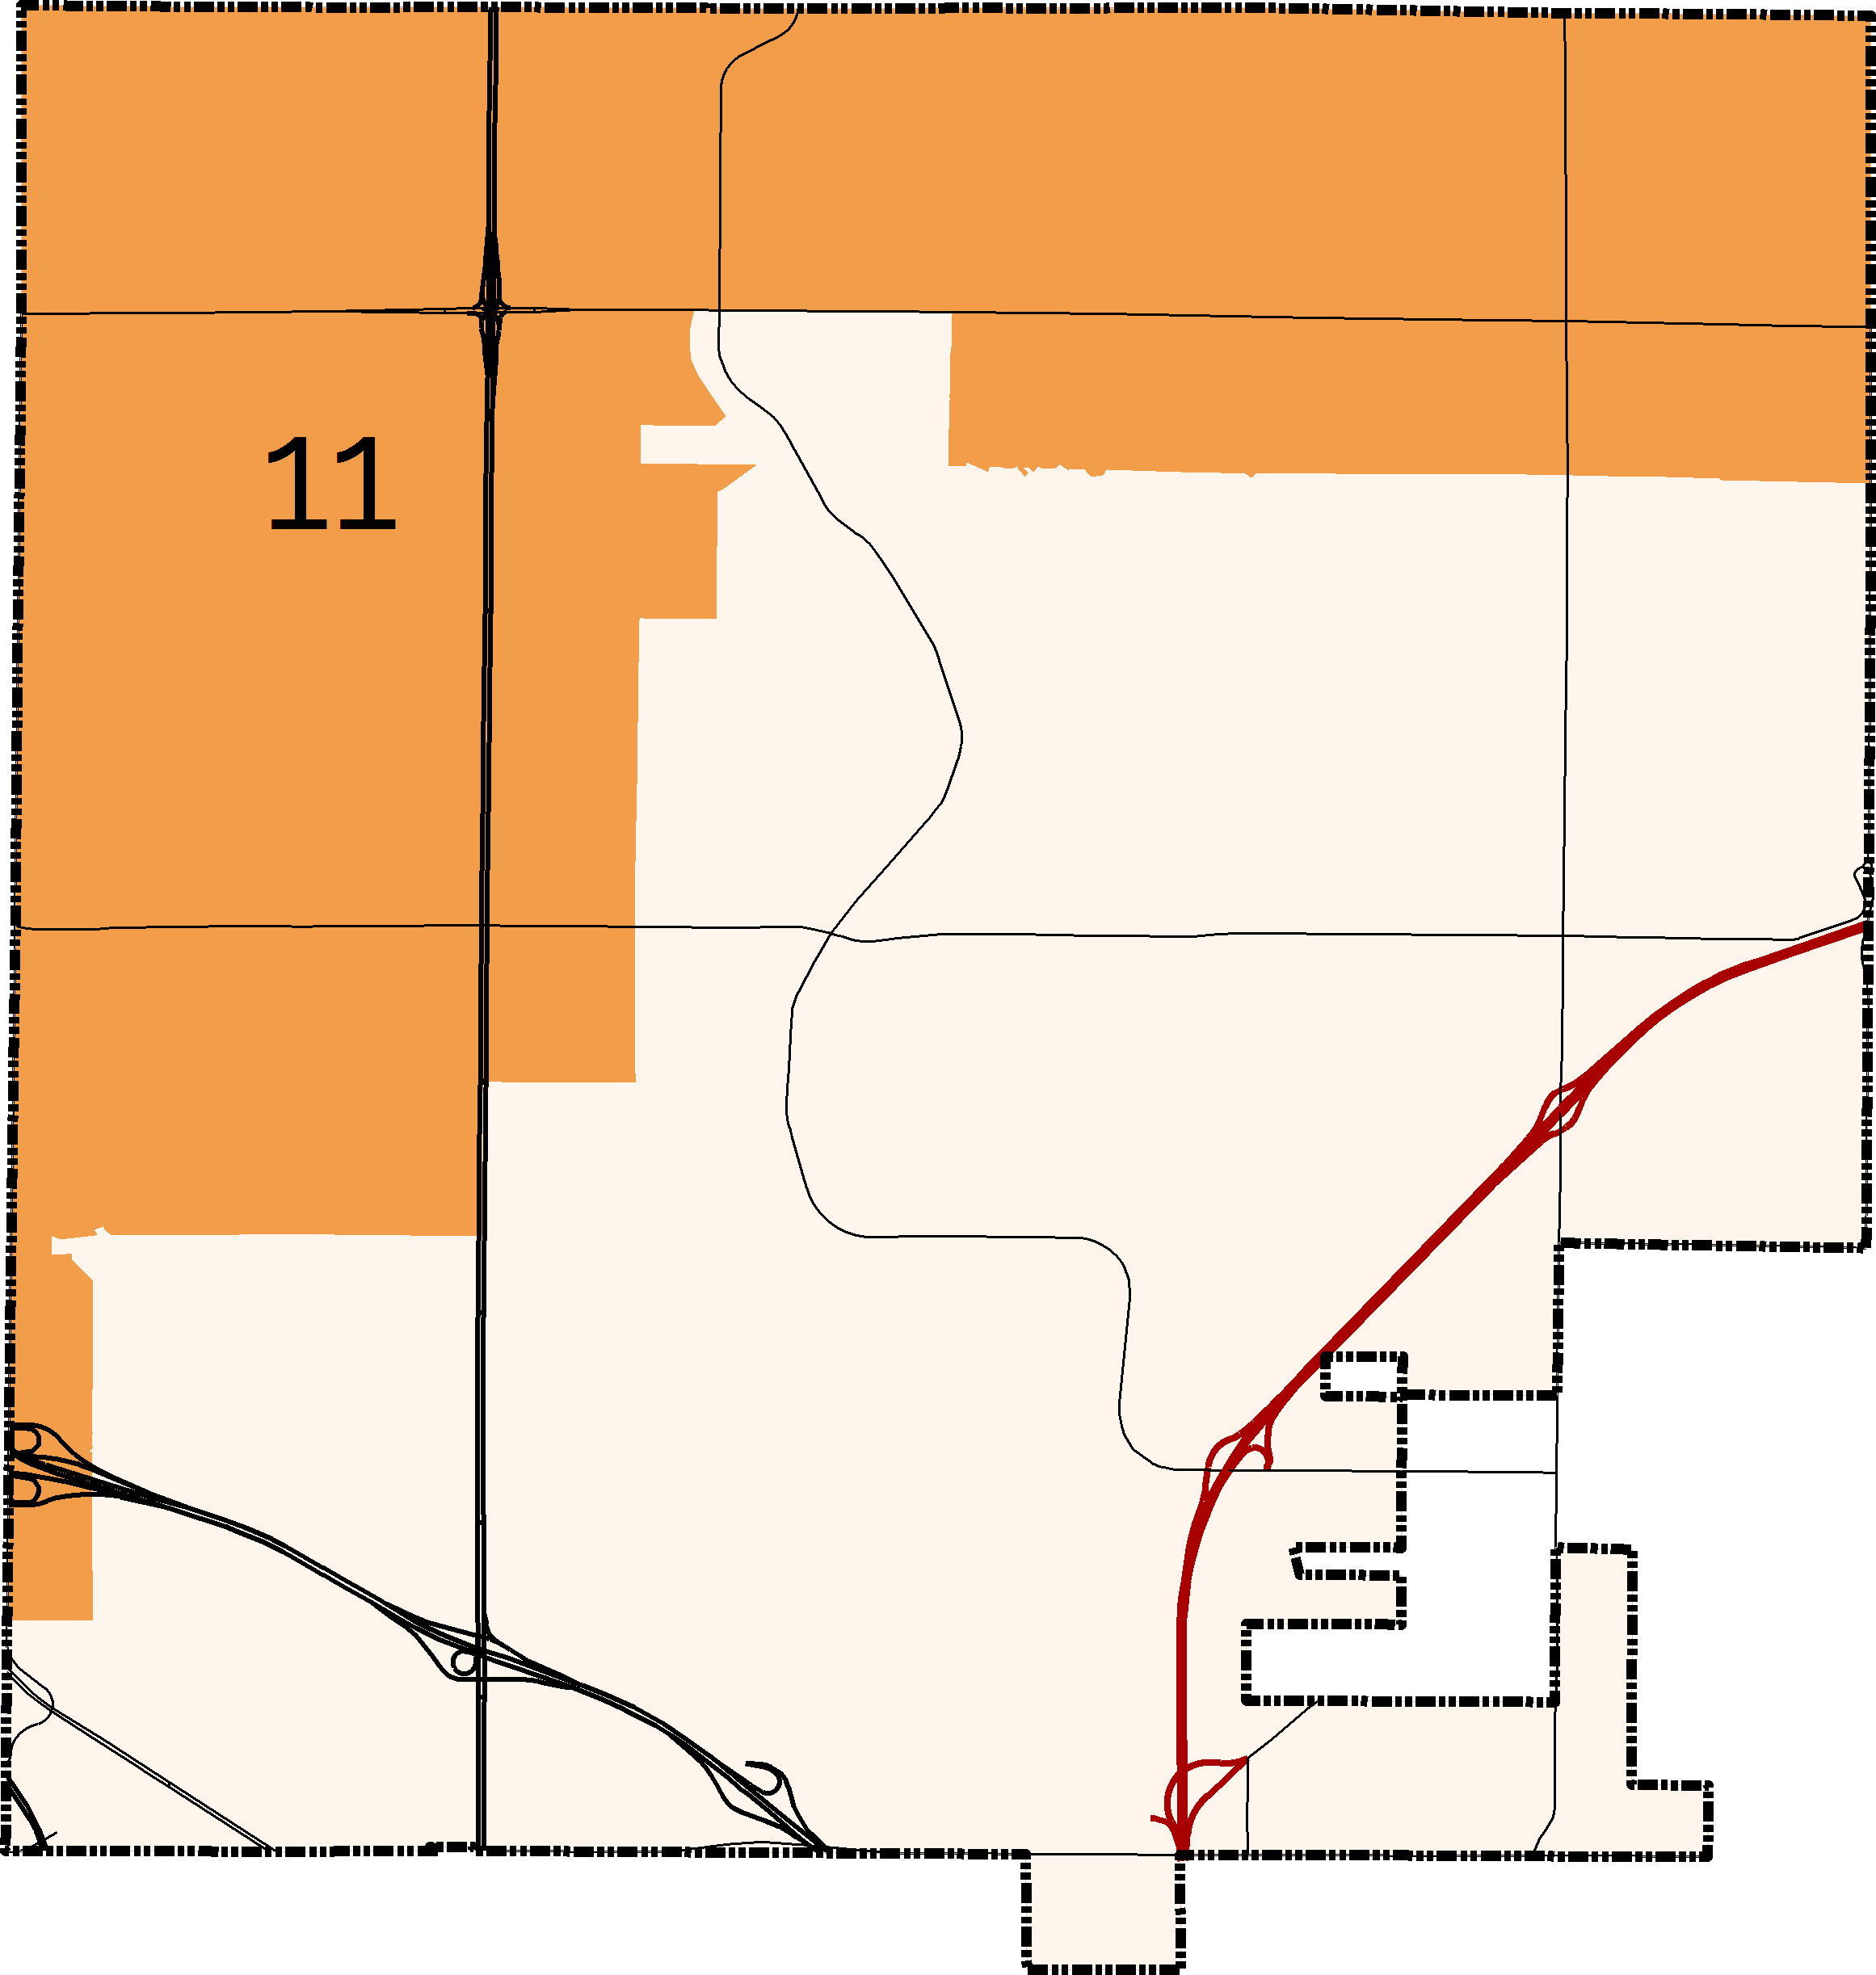 District 11 Boundary Map